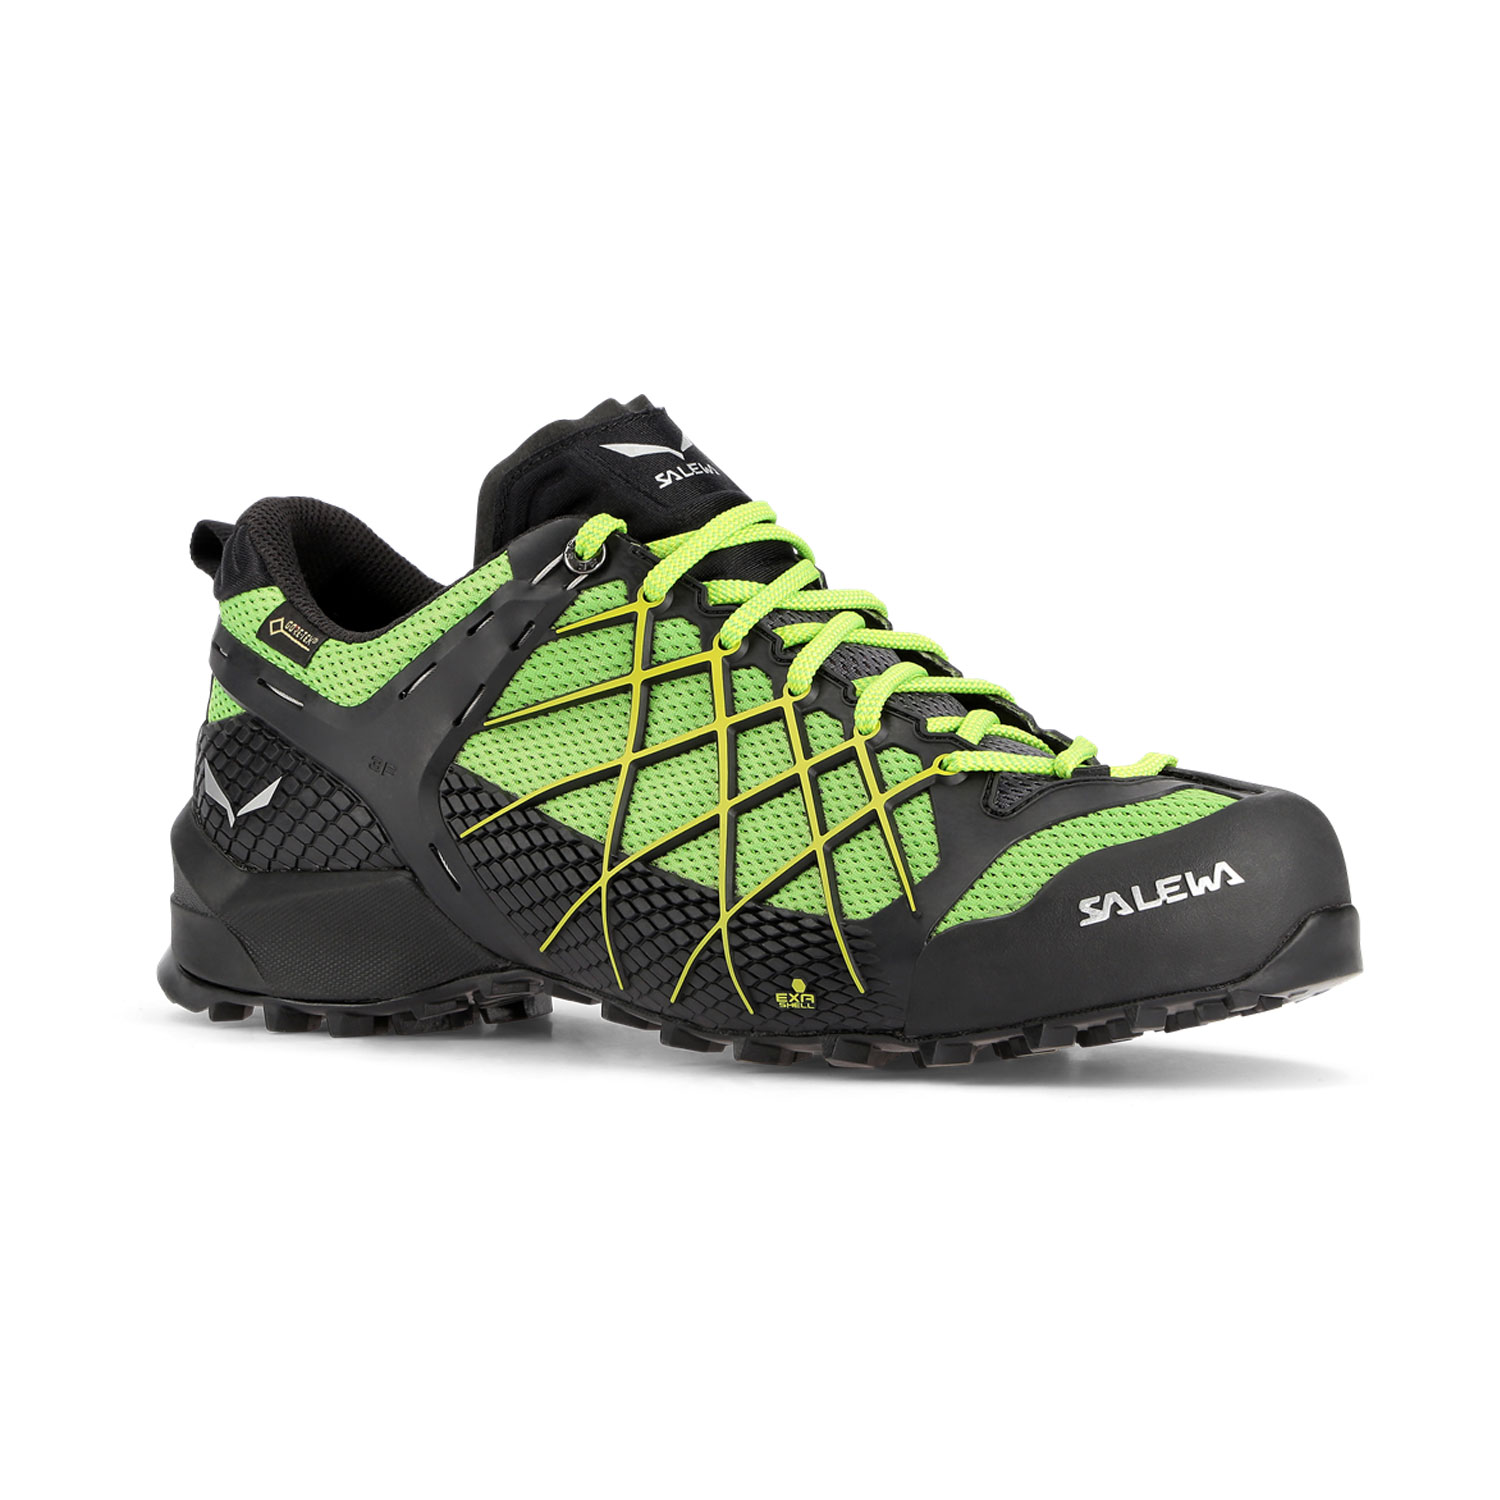 salewa ms wildfire gtx herren bergschuhe ebay. Black Bedroom Furniture Sets. Home Design Ideas